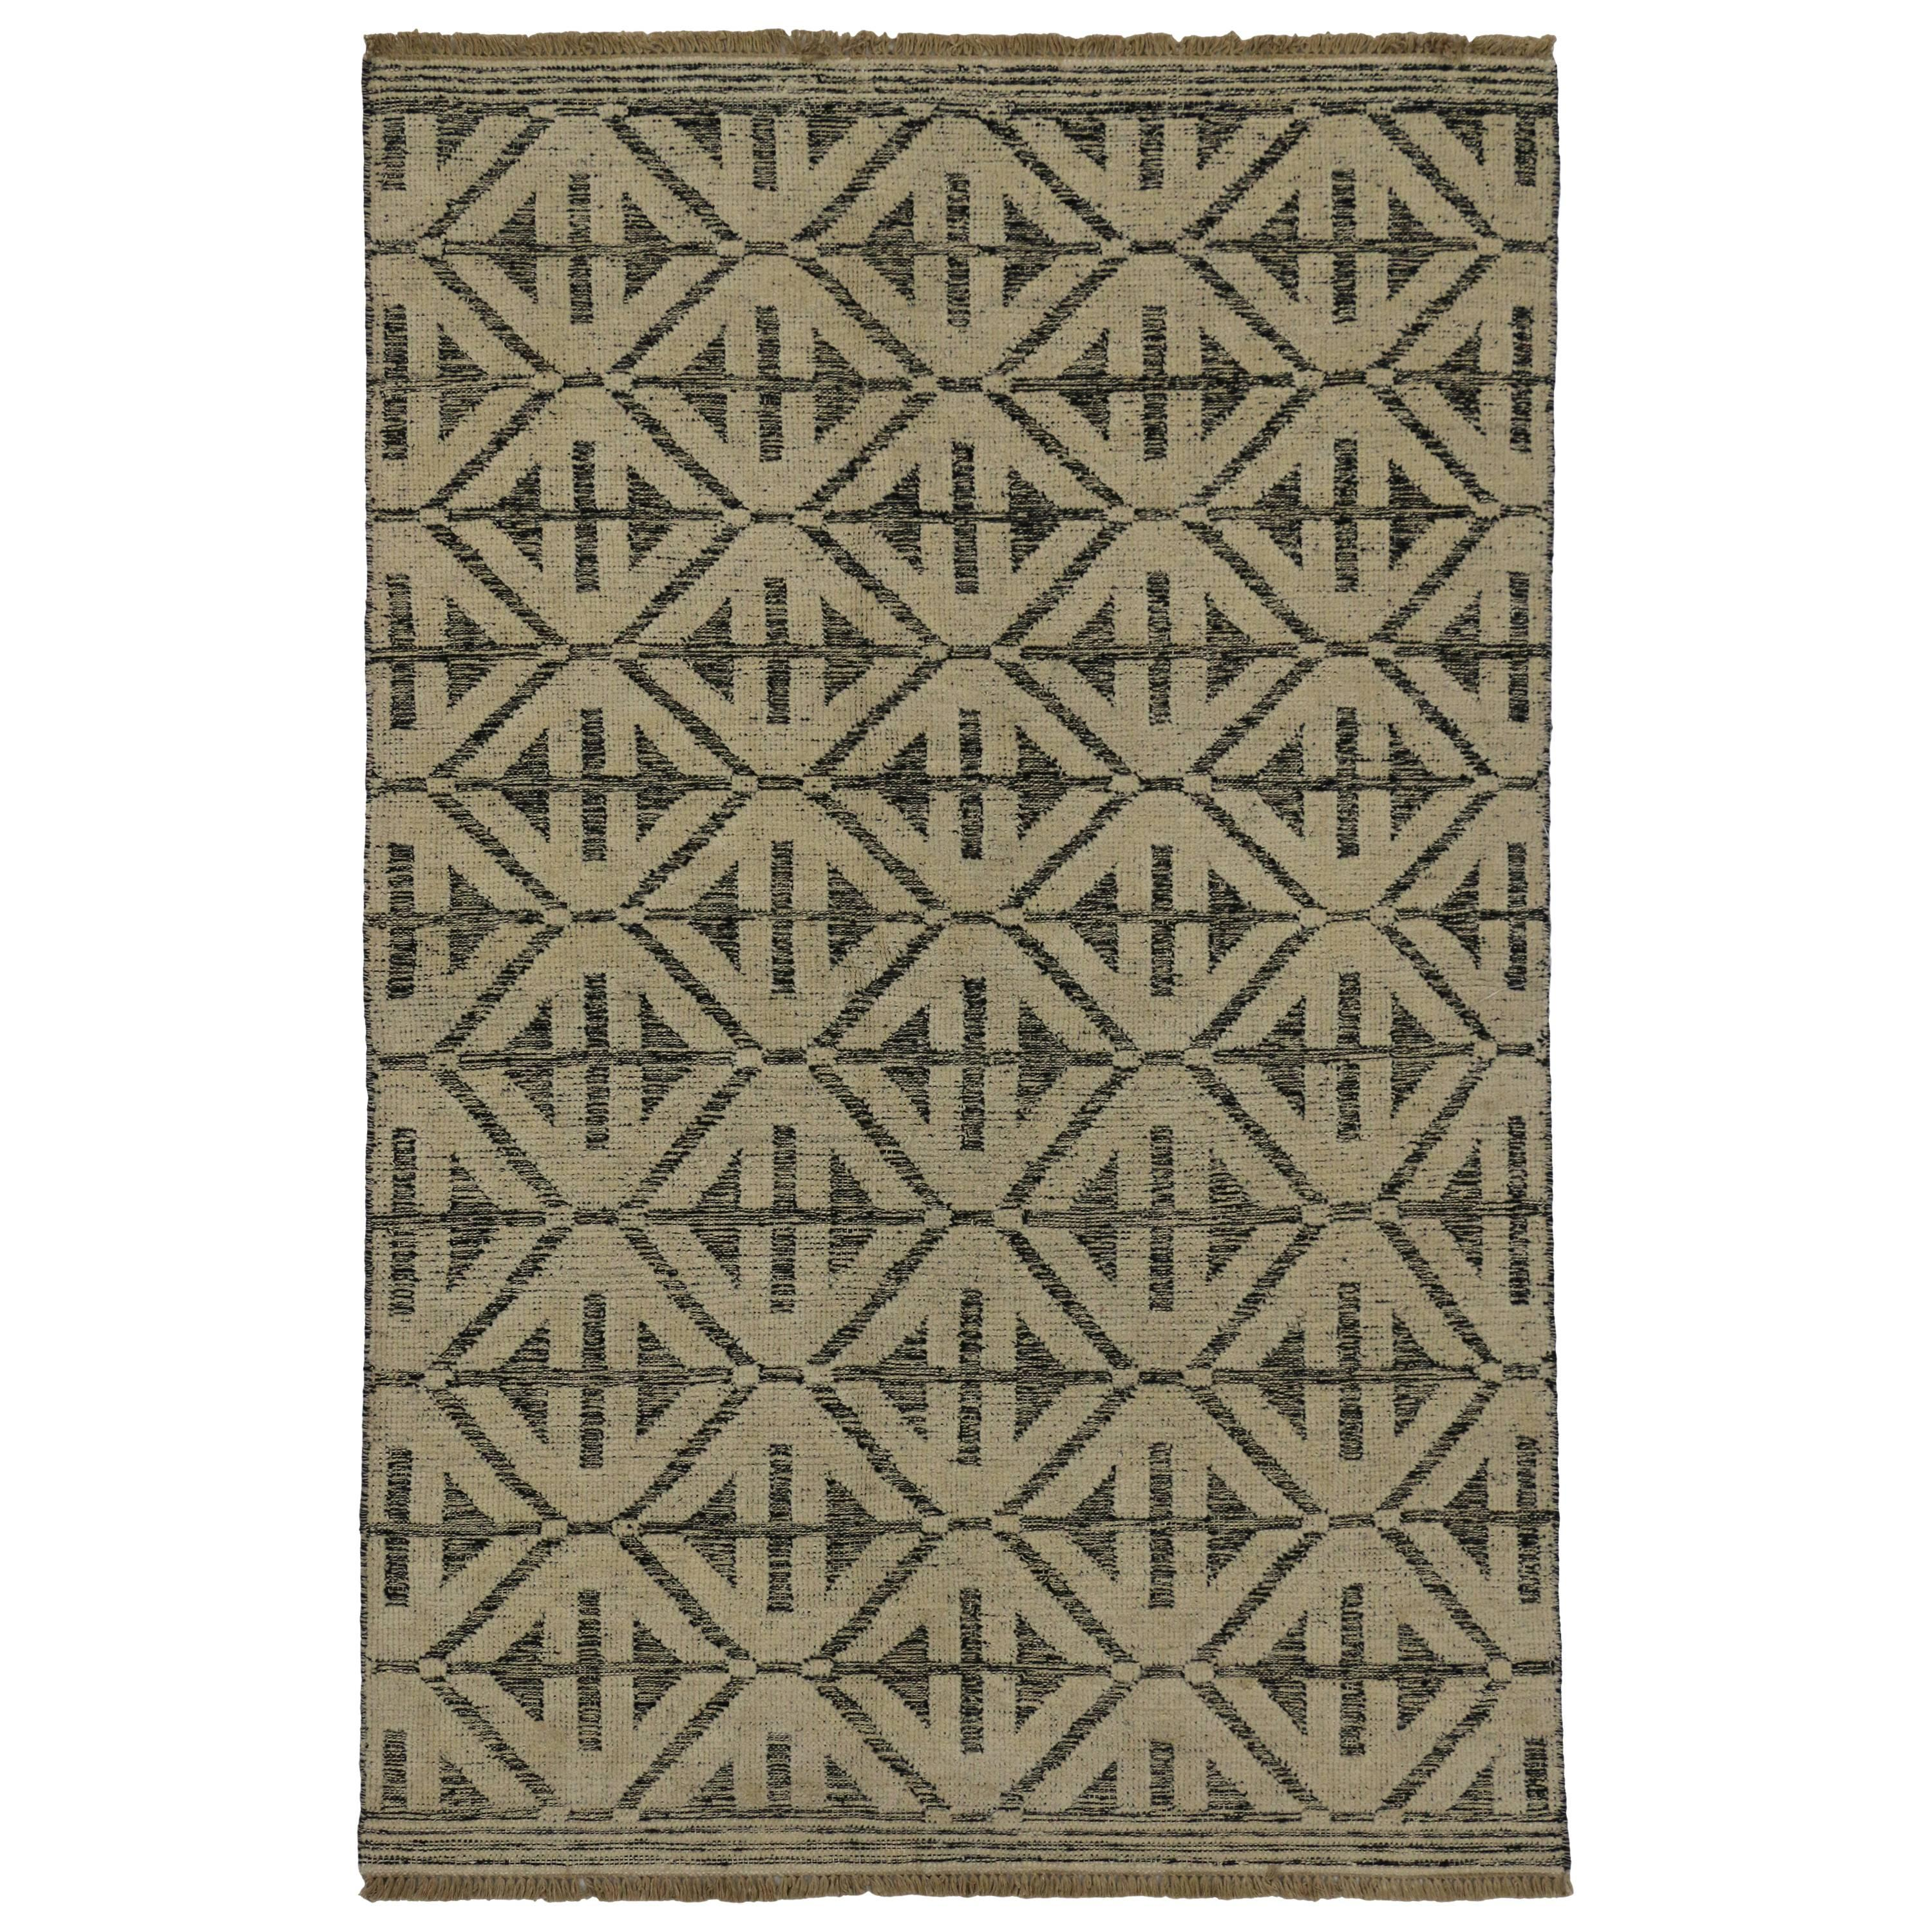 Modern rug texture Seamless High And Low Texture Rug With Contemporary Modern Style Geometric Accent Rug For Sale 1stdibs High And Low Texture Rug With Contemporary Modern Style Geometric